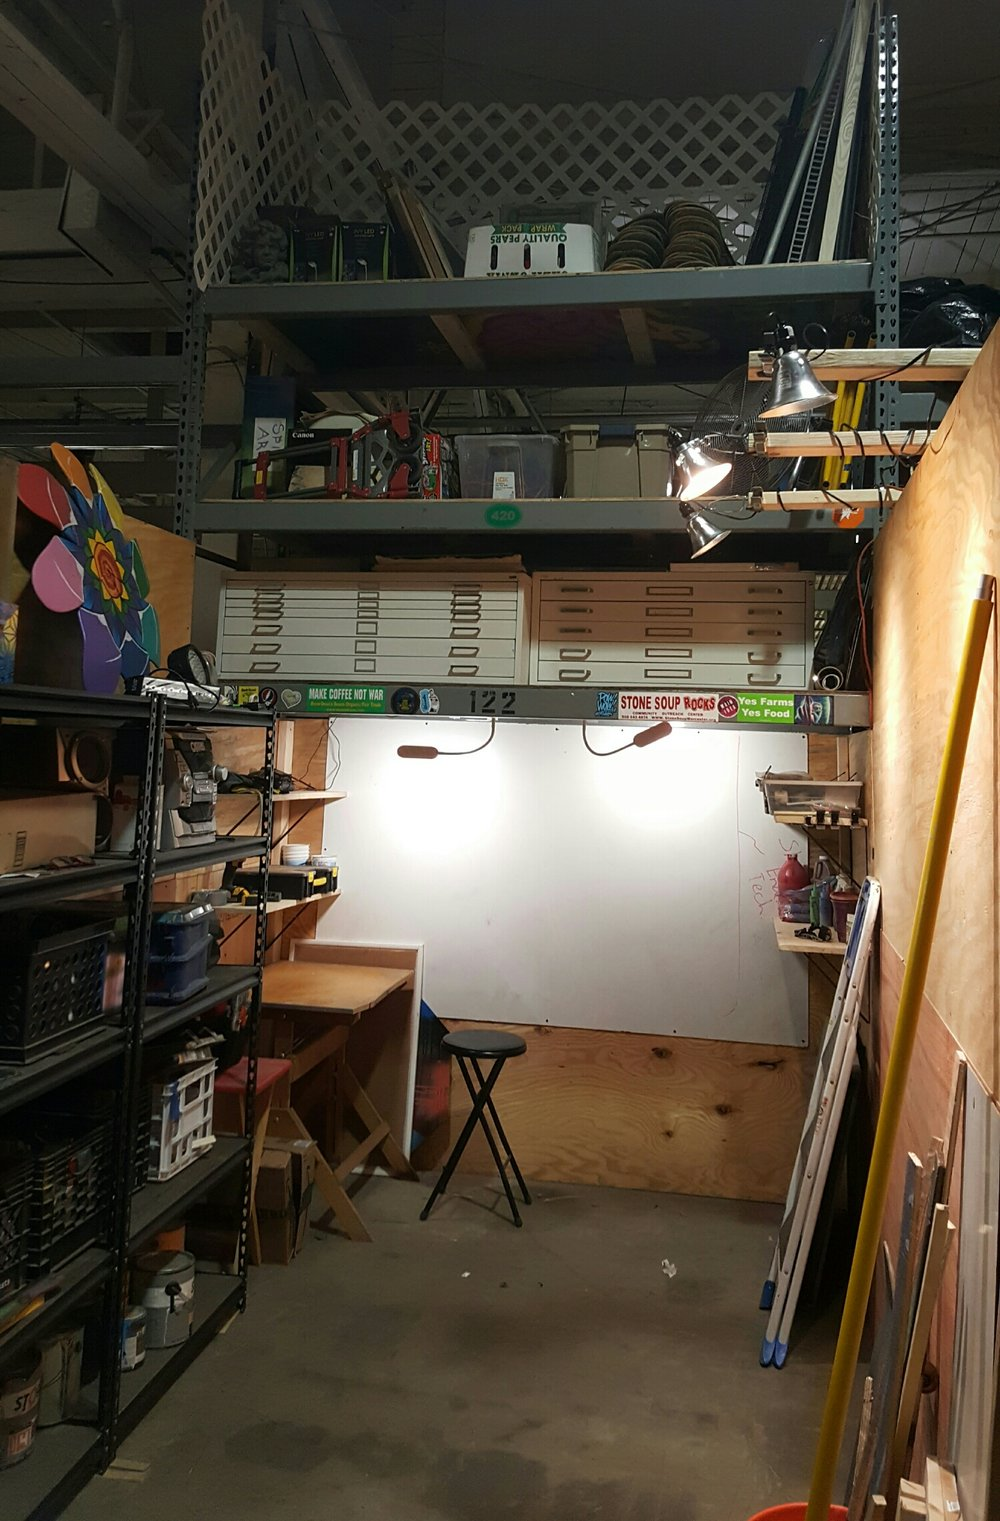 Full studio from the entrance.